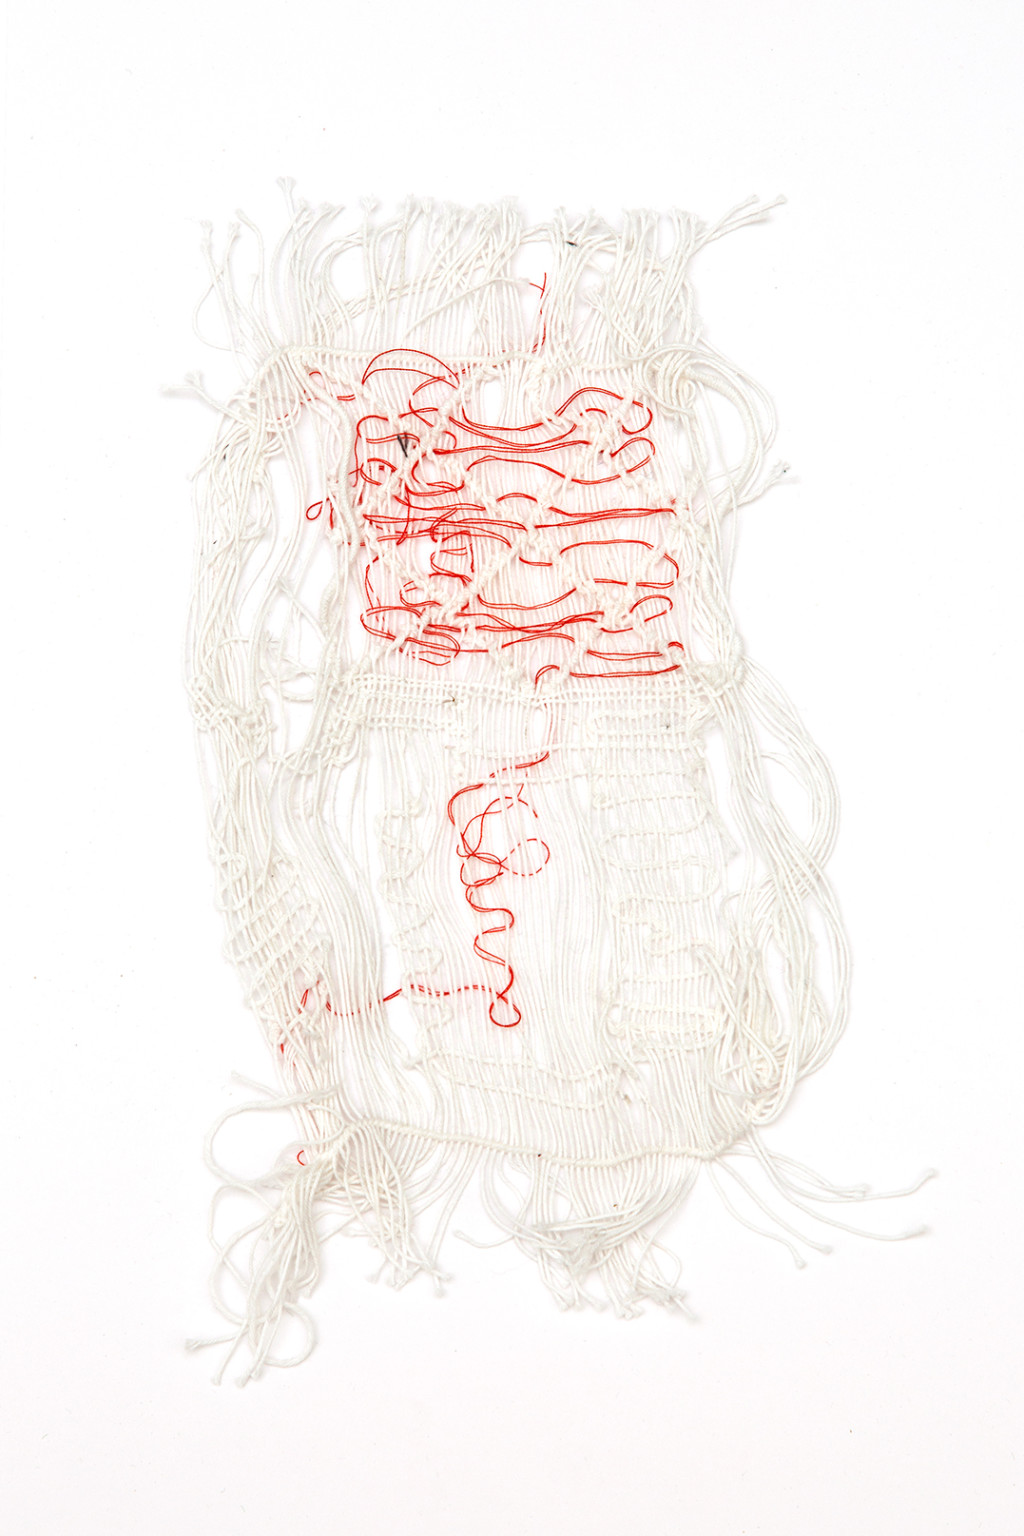 Marie Ilse Bourlanges I don't like you and I don't like weaving [text & weavings]